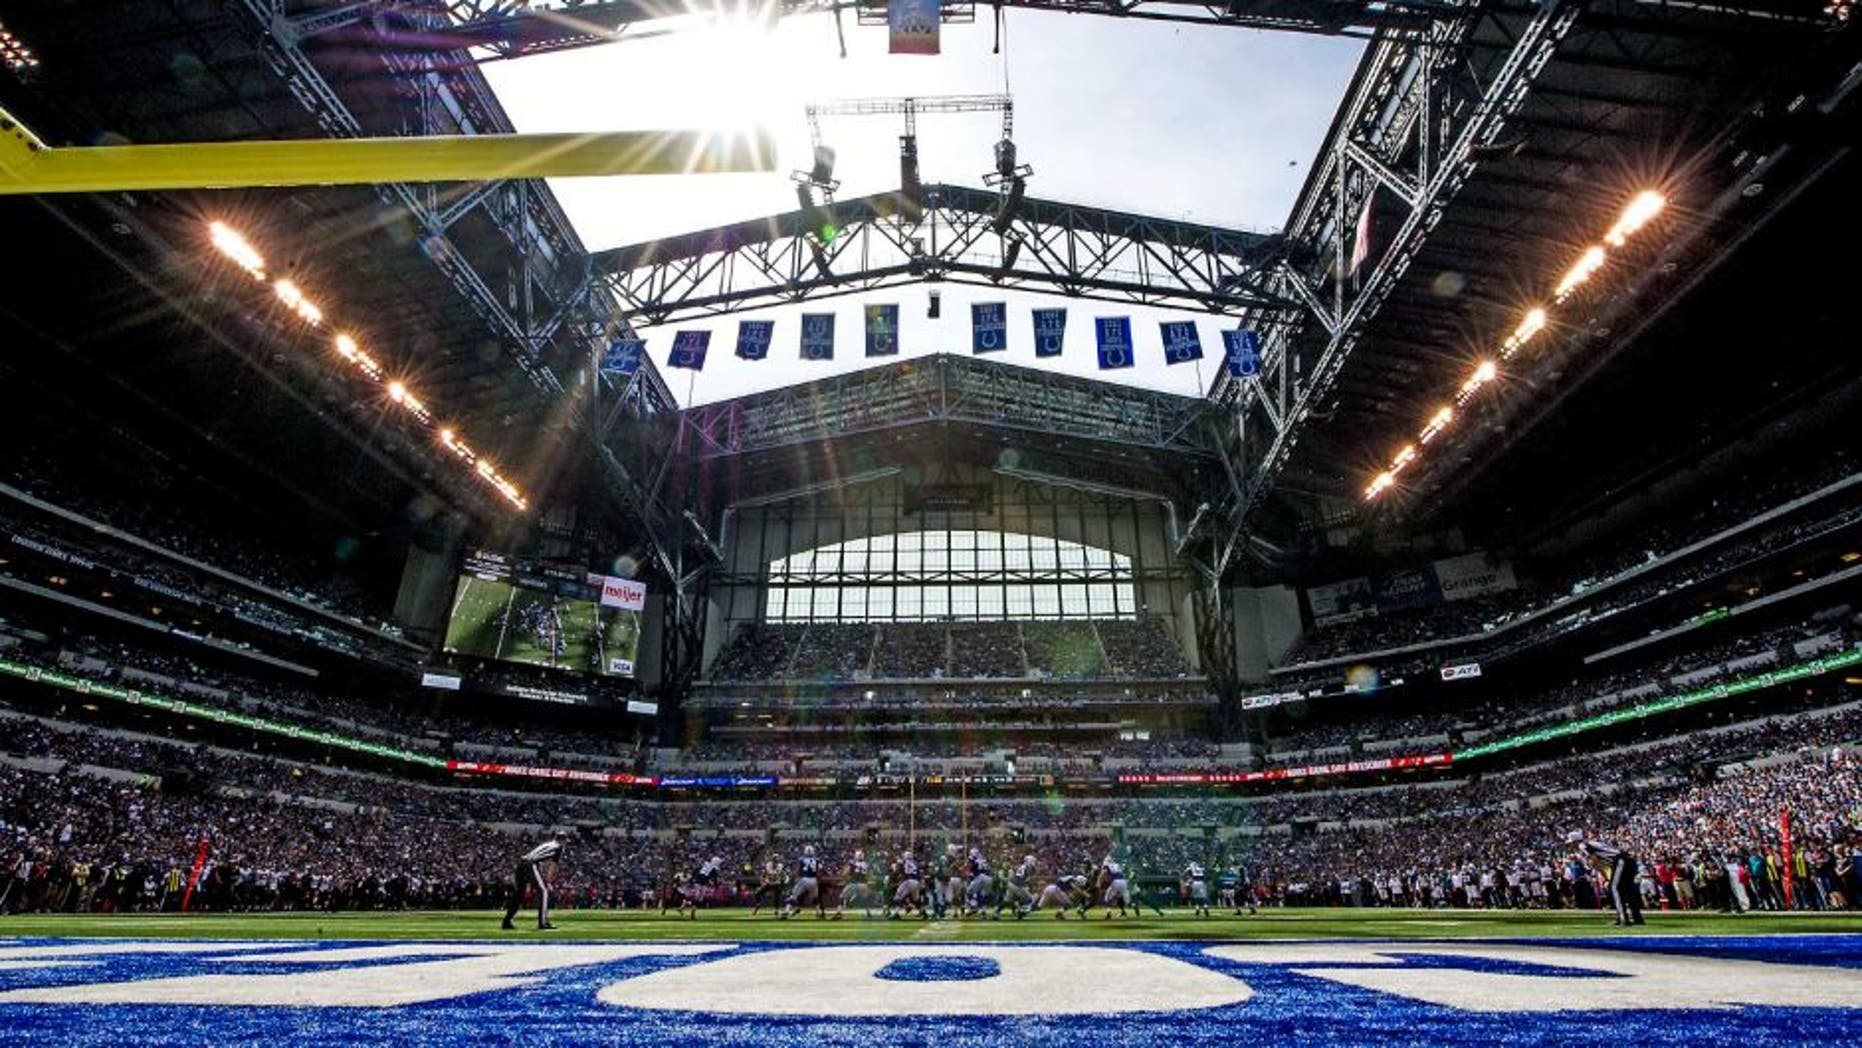 Oct 4, 2015; Indianapolis, IN, USA; An overall view at the Indianapolis Colts play against the Jacksonville Jaguars at Lucas Oil Stadium. Mandatory Credit: Thomas J. Russo-USA TODAY Sports